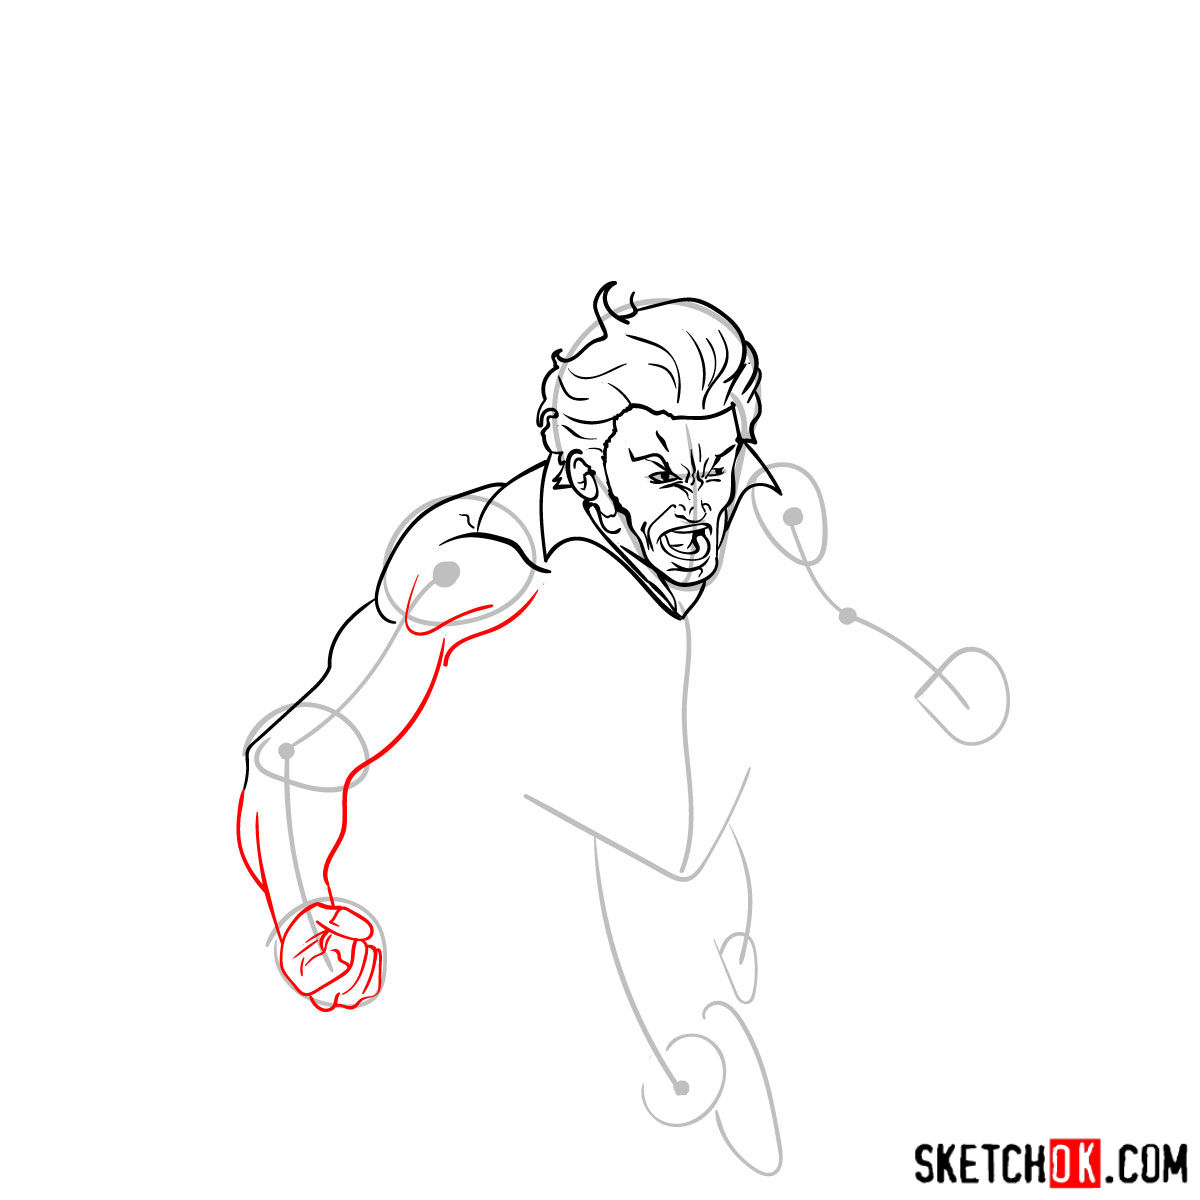 How to draw Banshee mutant from X-Men - step 07